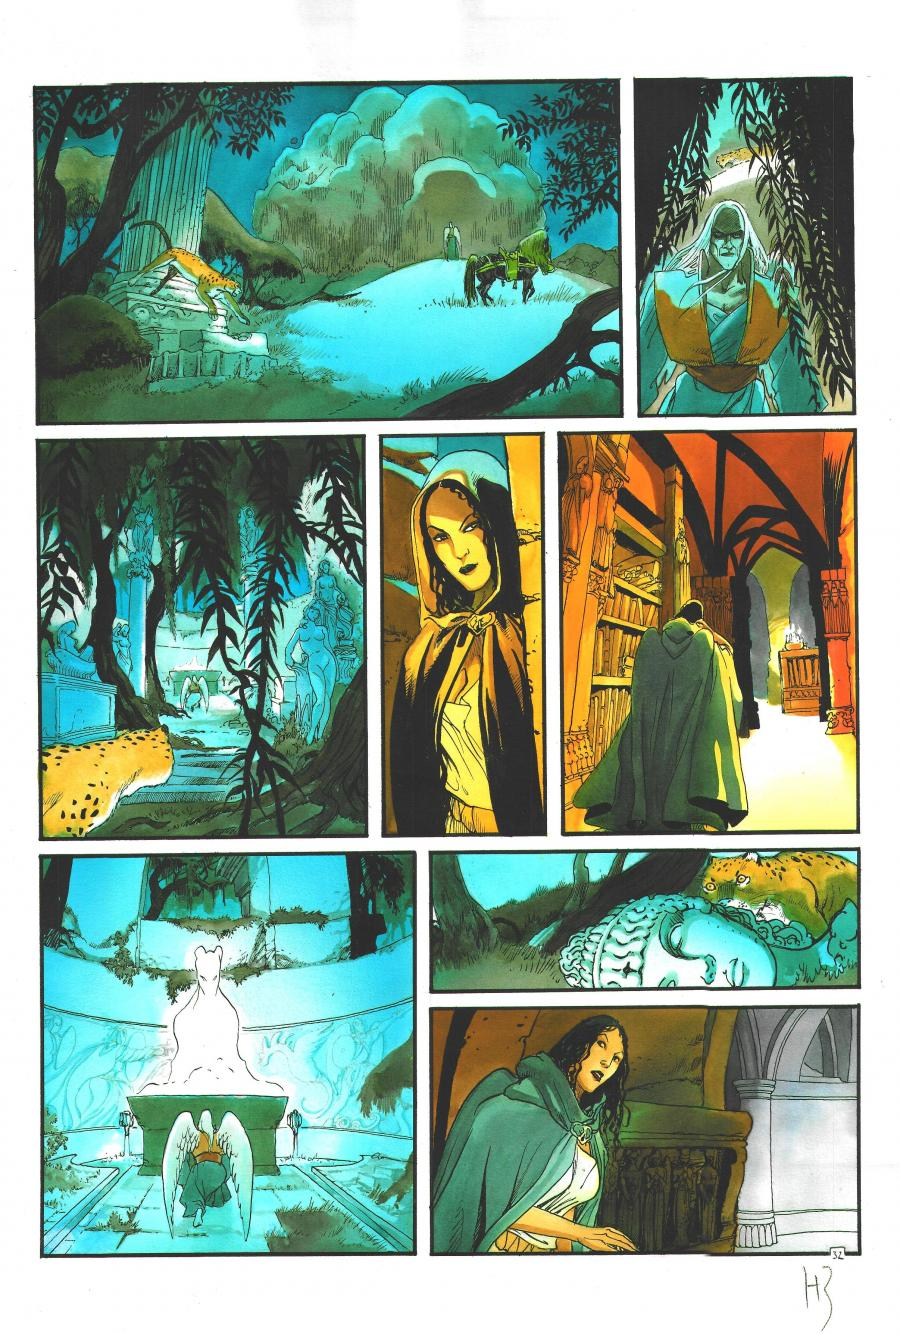 Original page 32 from Les Immortels Issue 4 - Le Second Cavalier by Henri Reculé